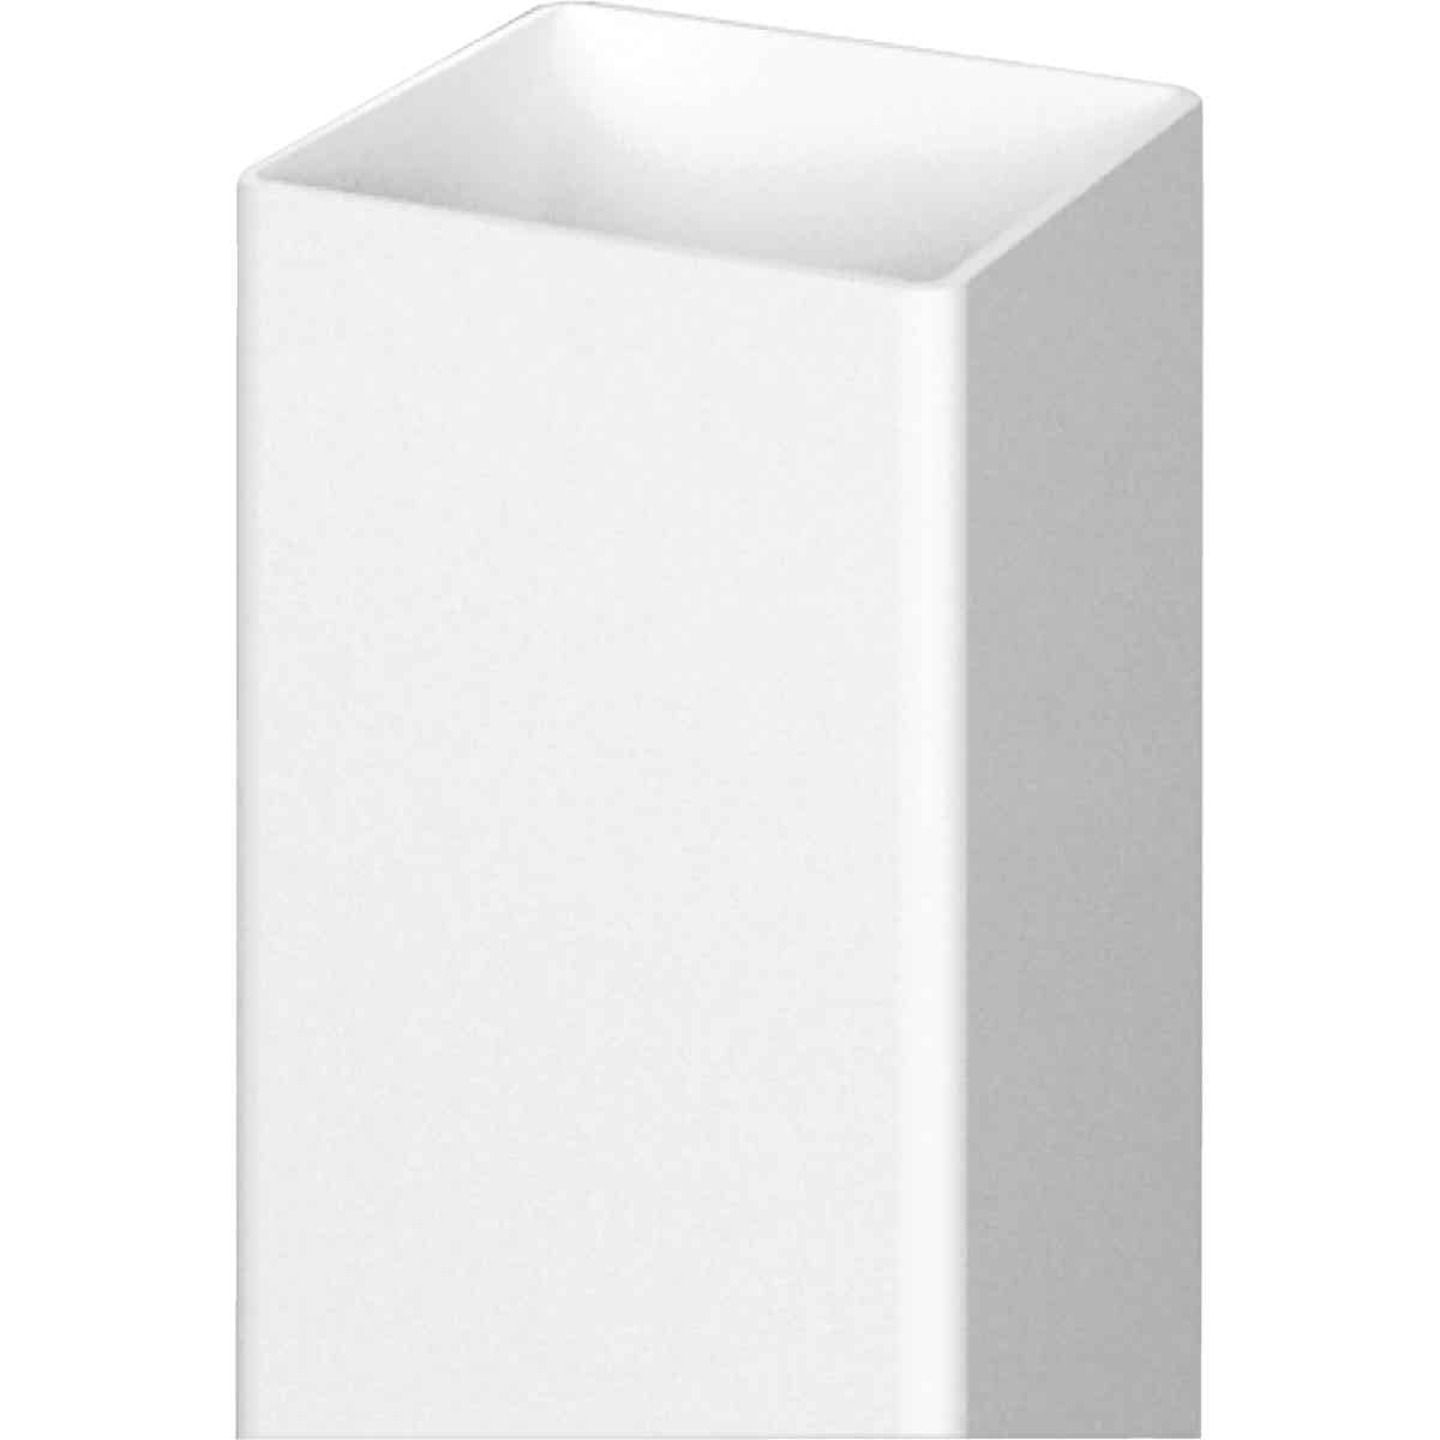 Outdoor Essentials 4 In. x 4 In. x 72 In. White Blank Vinyl Post Image 3